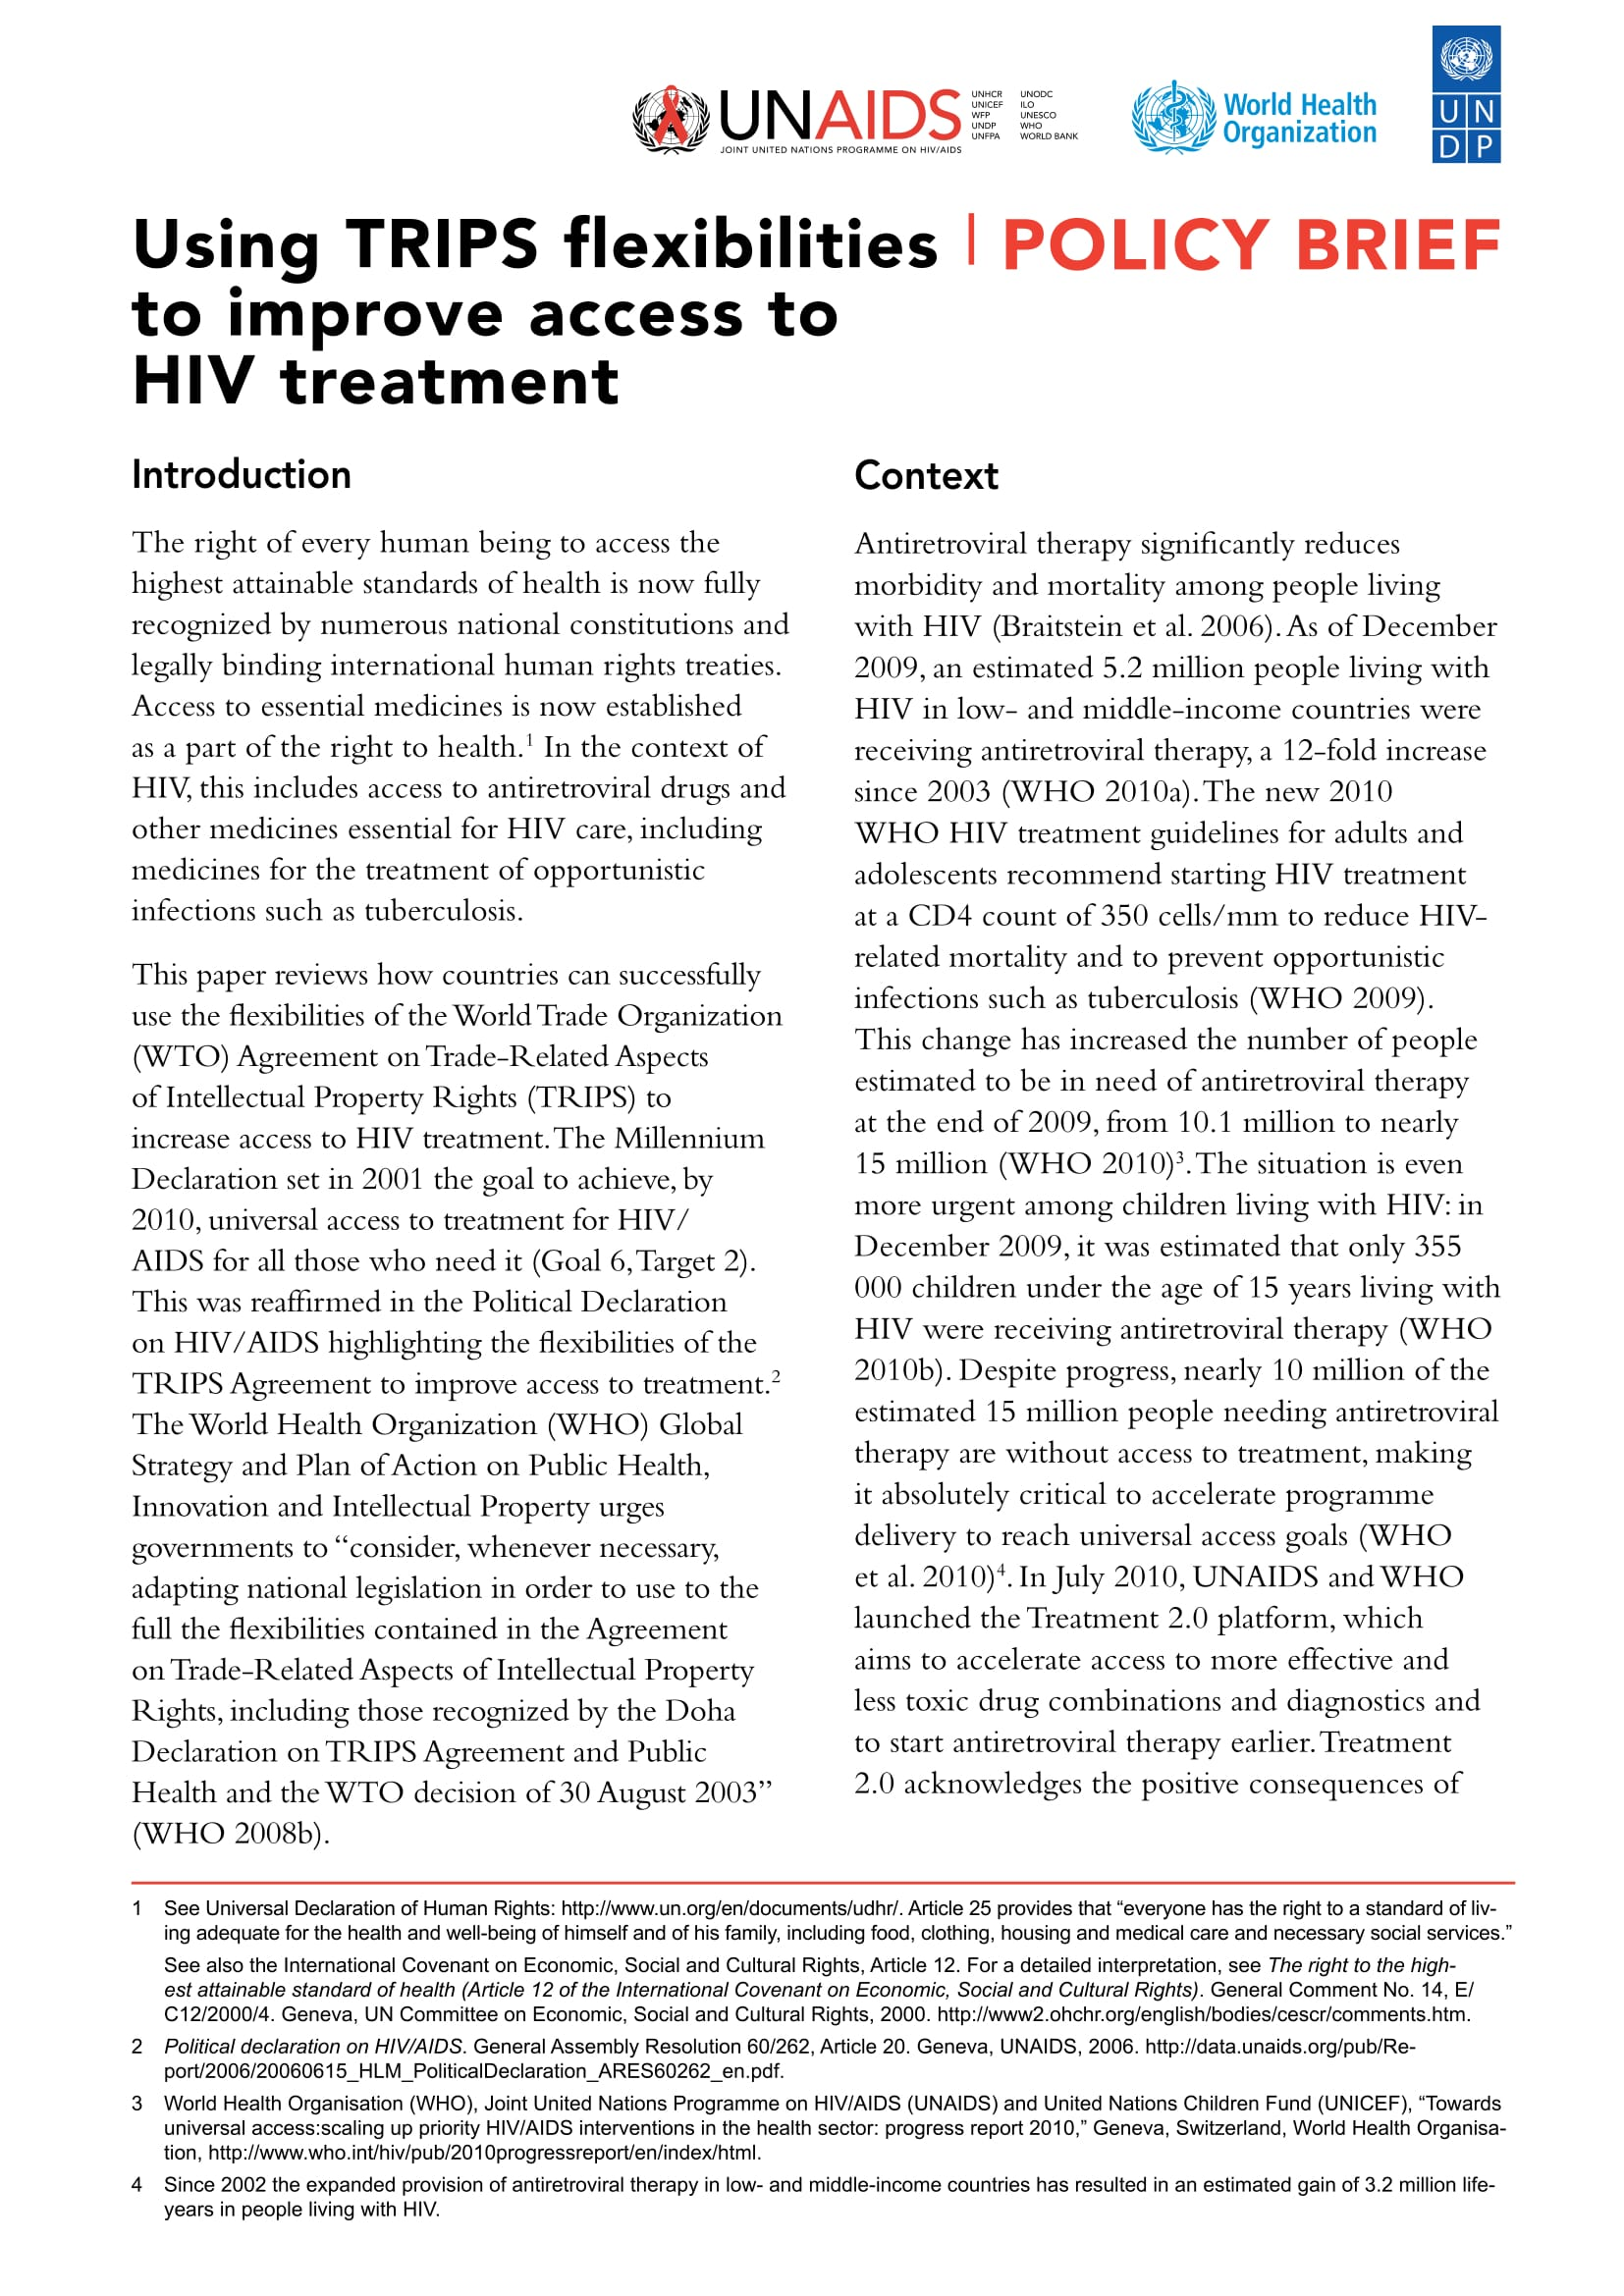 Using TRIPS flexibilities to improve access to HIV treatment: Policy brief